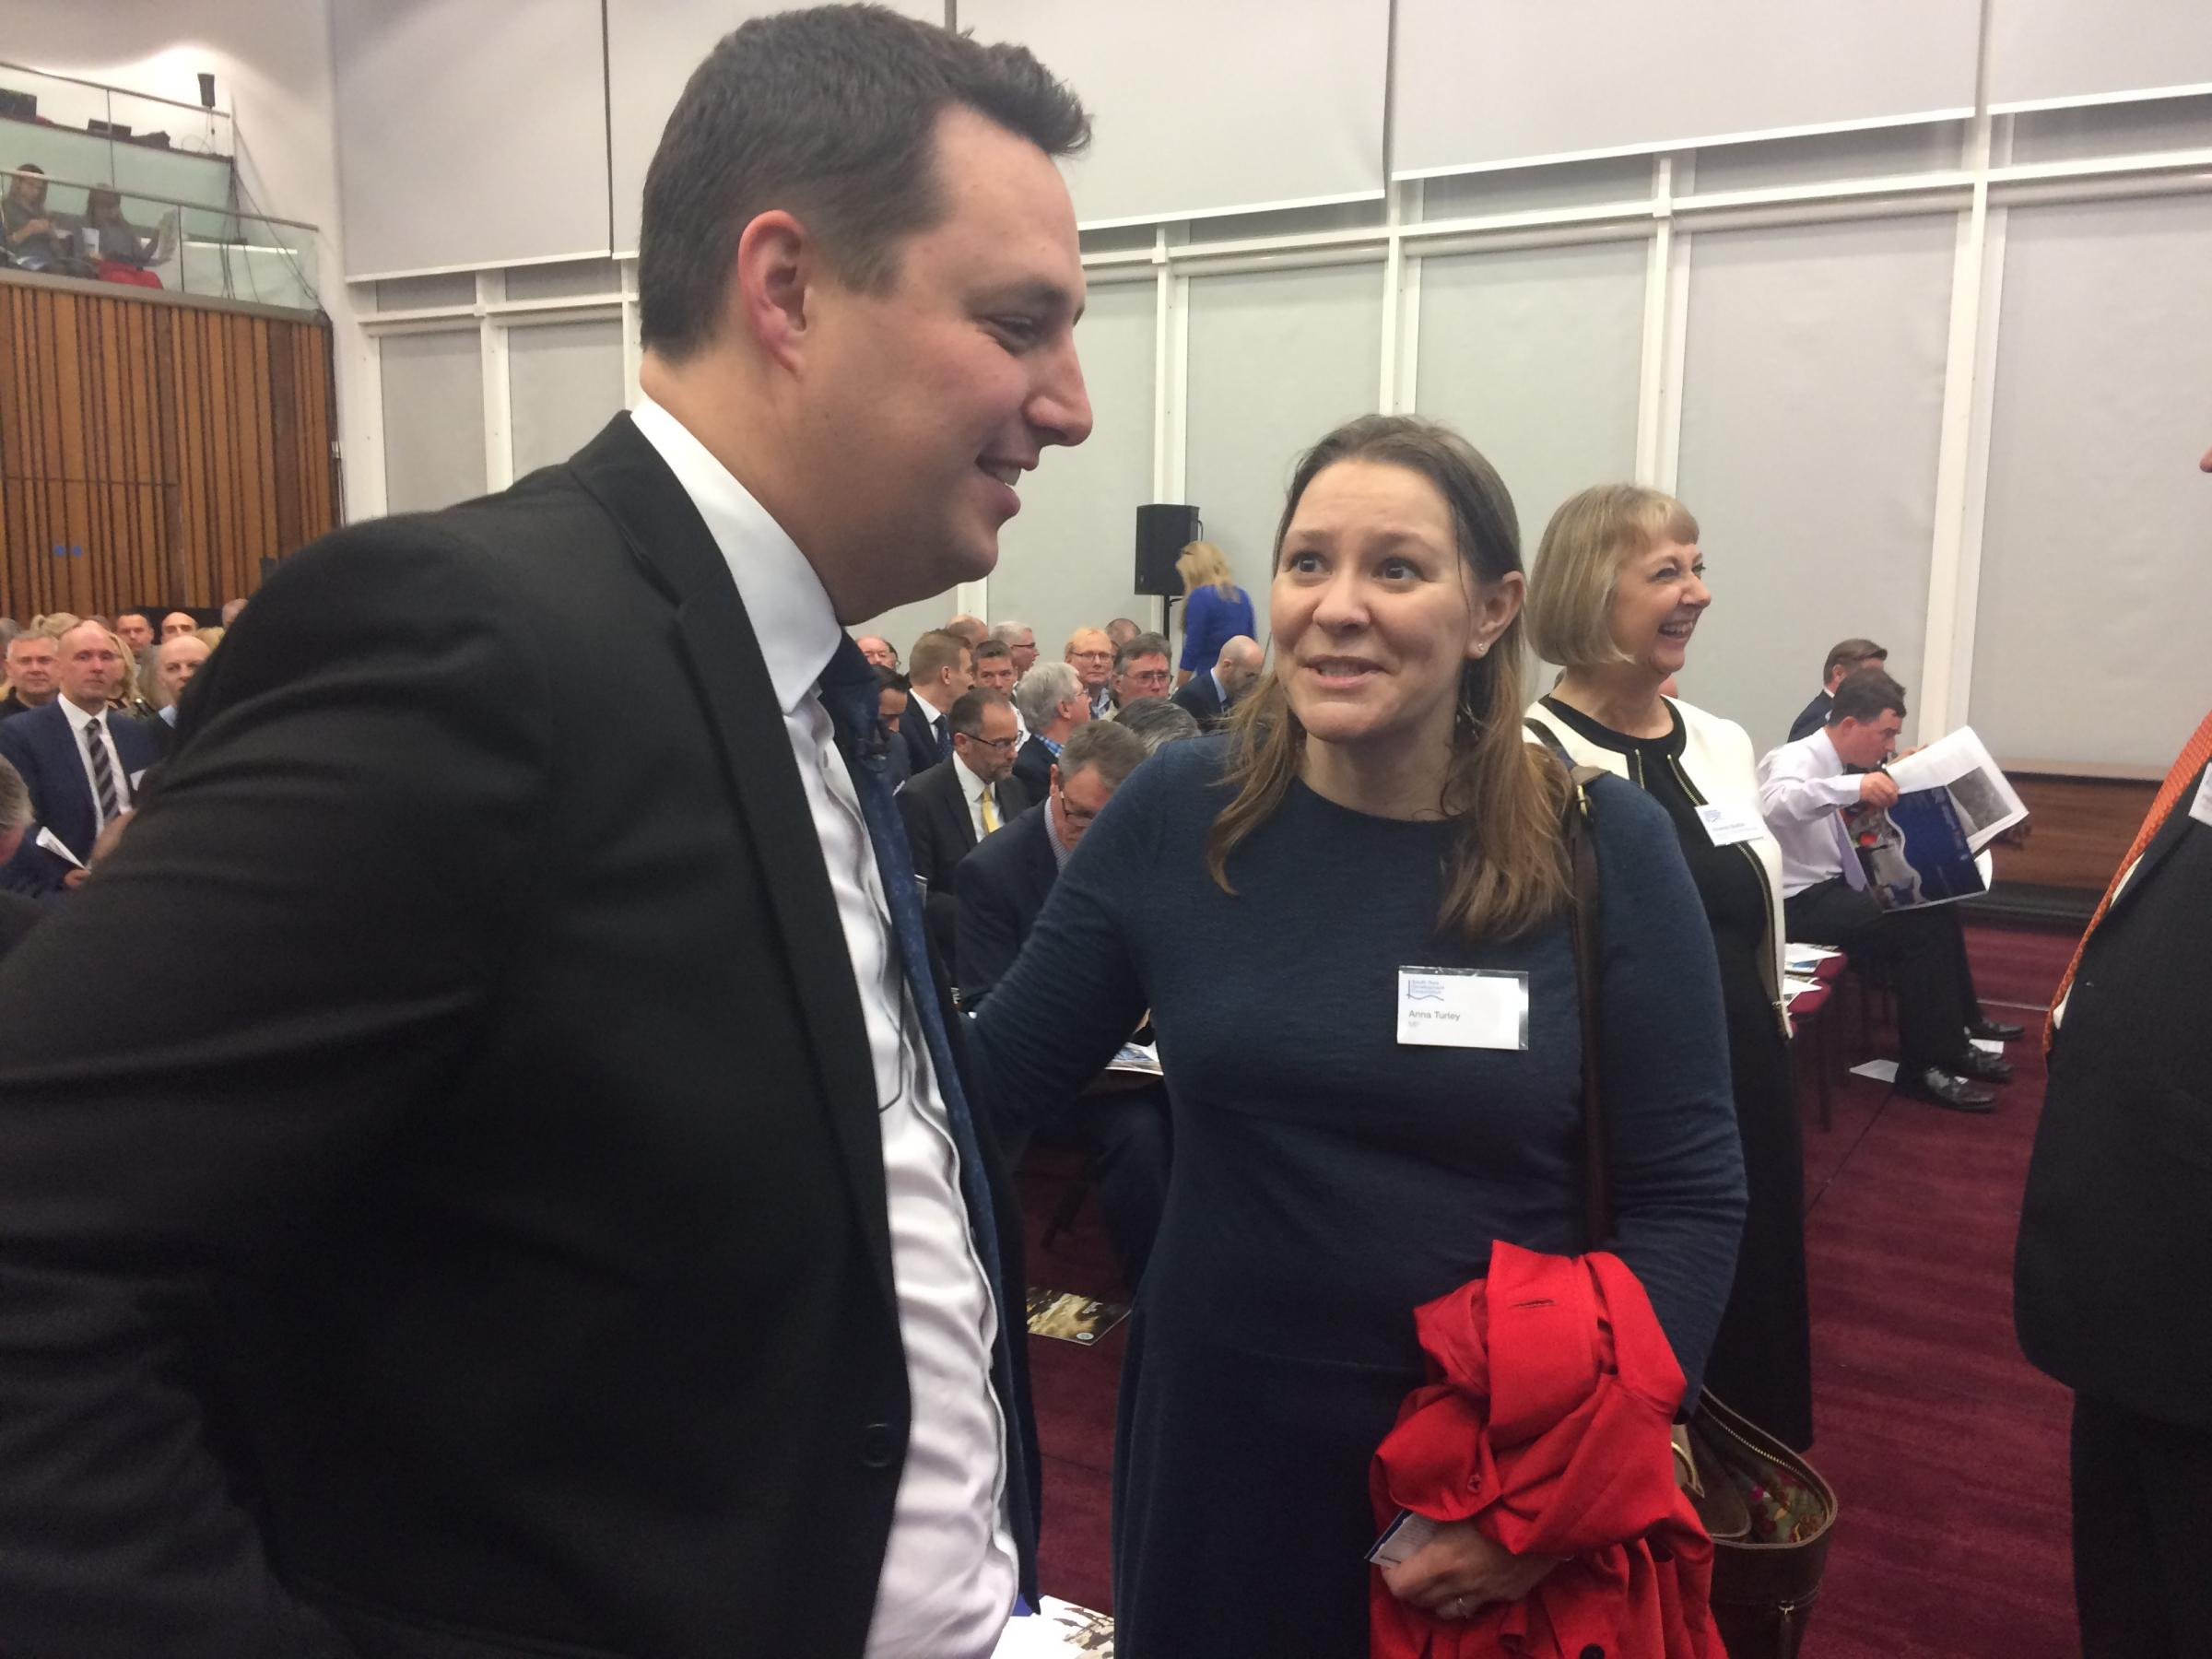 Ben Houchen and Anna Turley at Wednesday's launch Picture: Nick Gullon